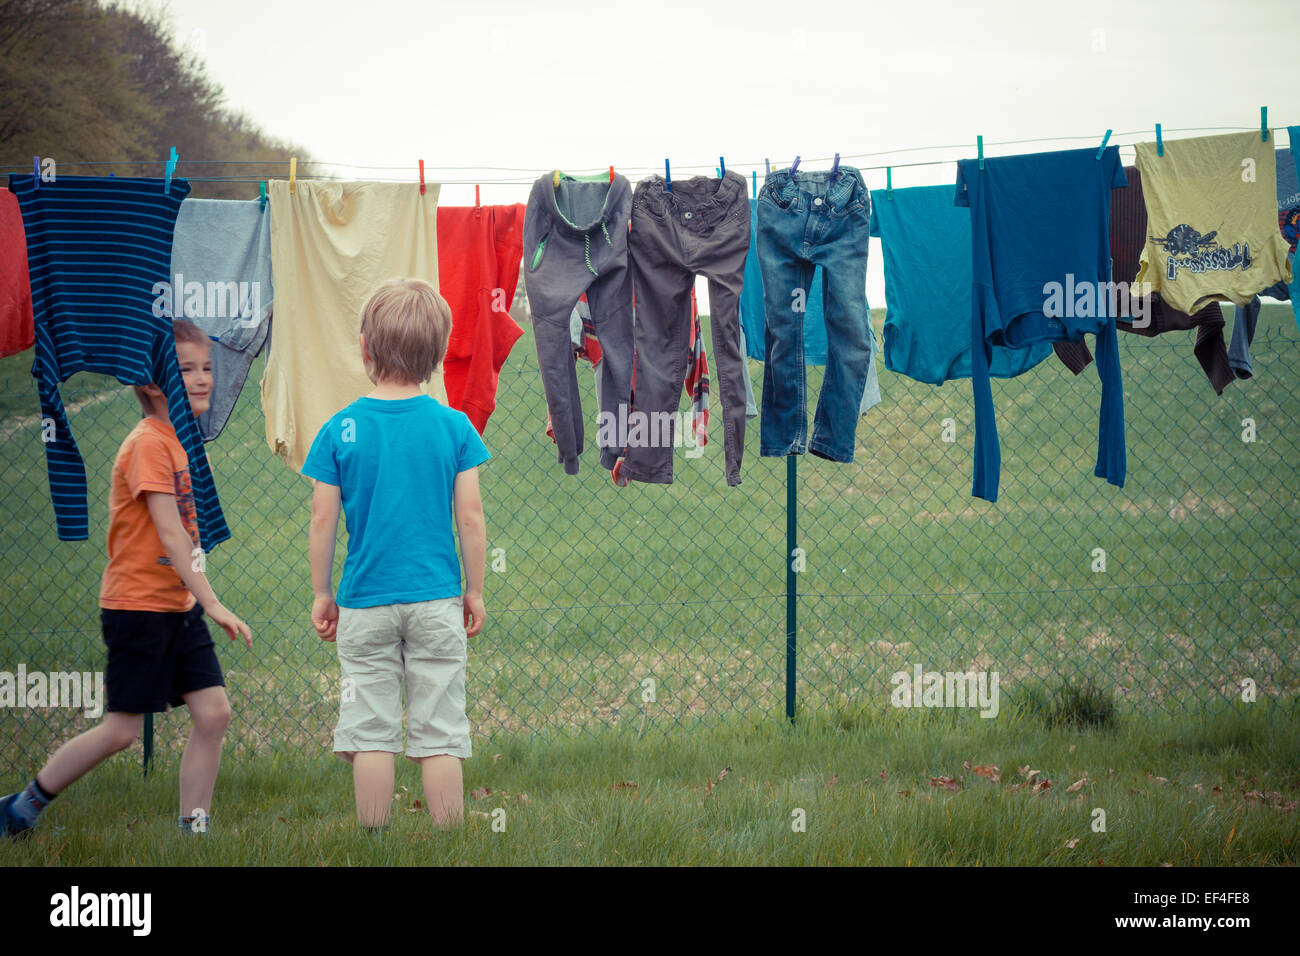 boys playing walking, laundry hanging - Stock Image